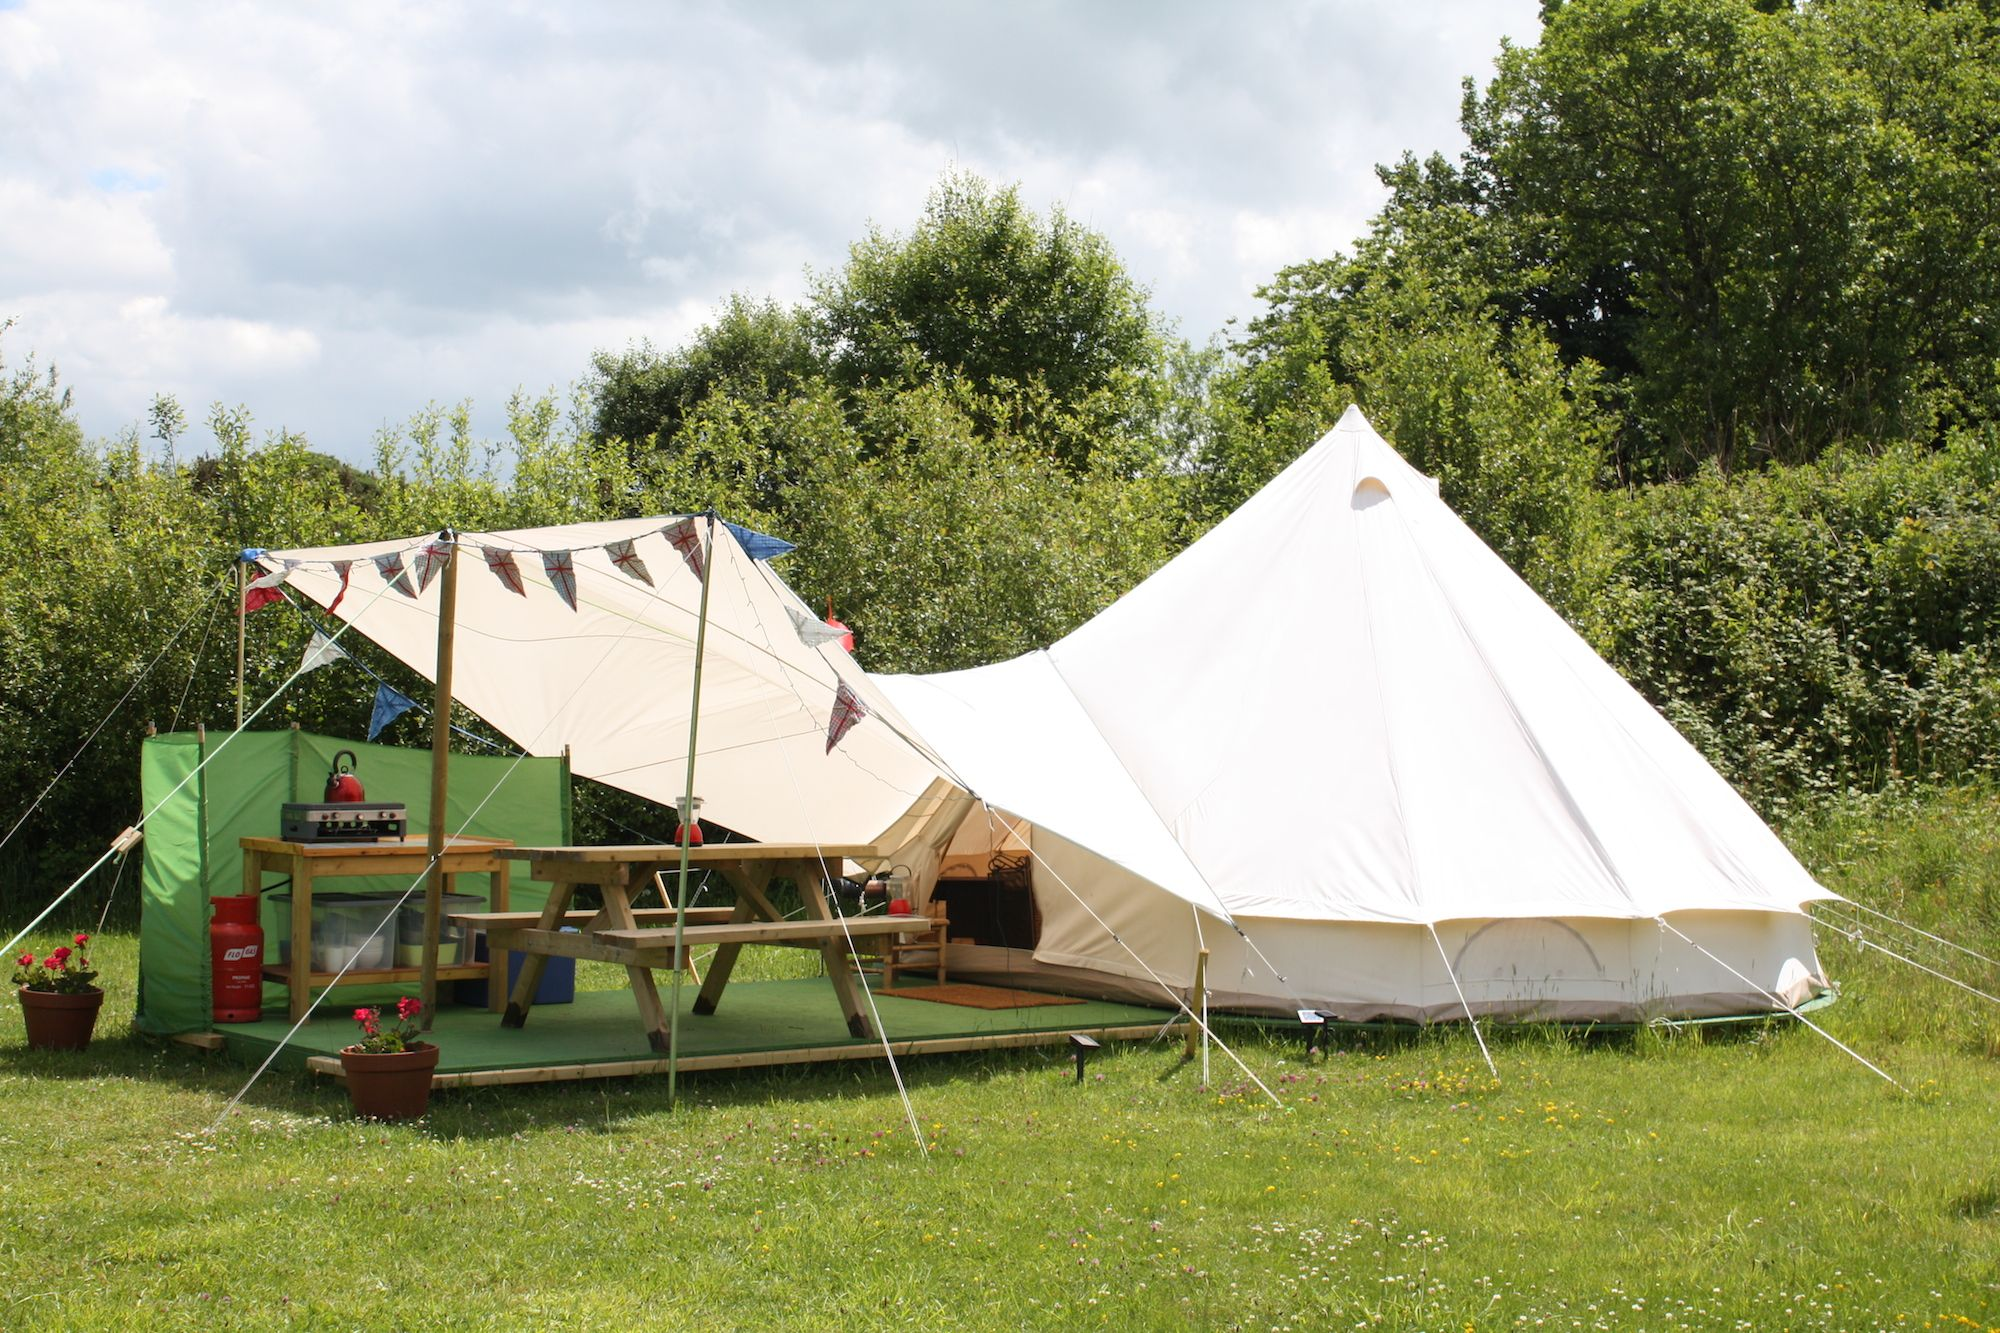 bell tent awning - Google Search u2026 & bell tent awning - Google Search u2026   Camping Concepts   Pinterest ...